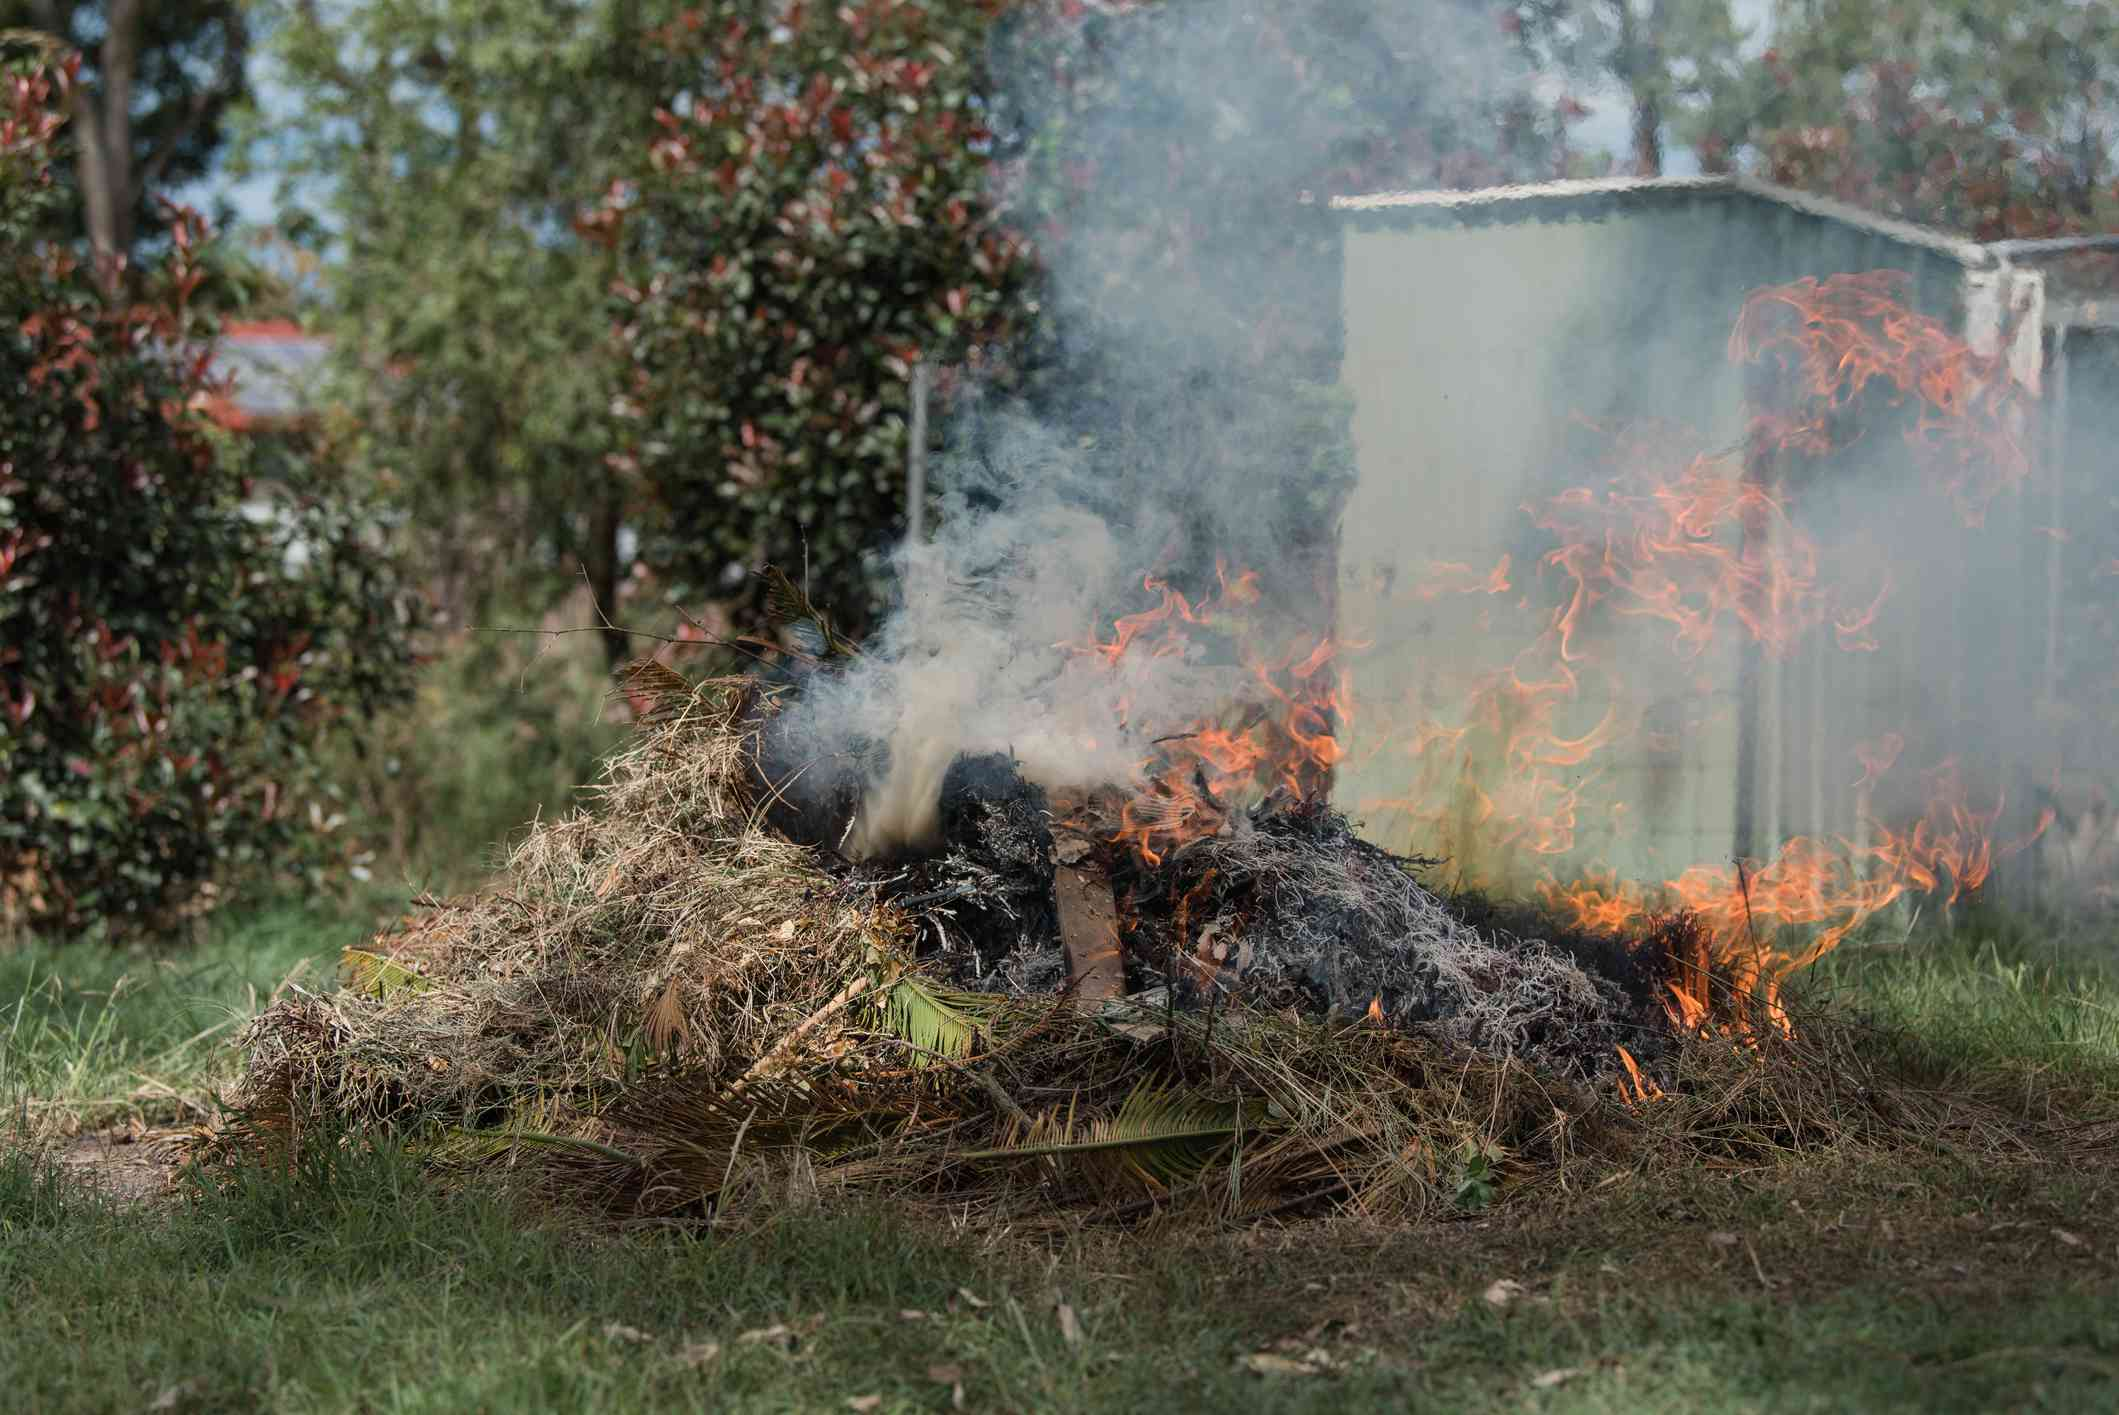 Fire controlled burn off of garden waste